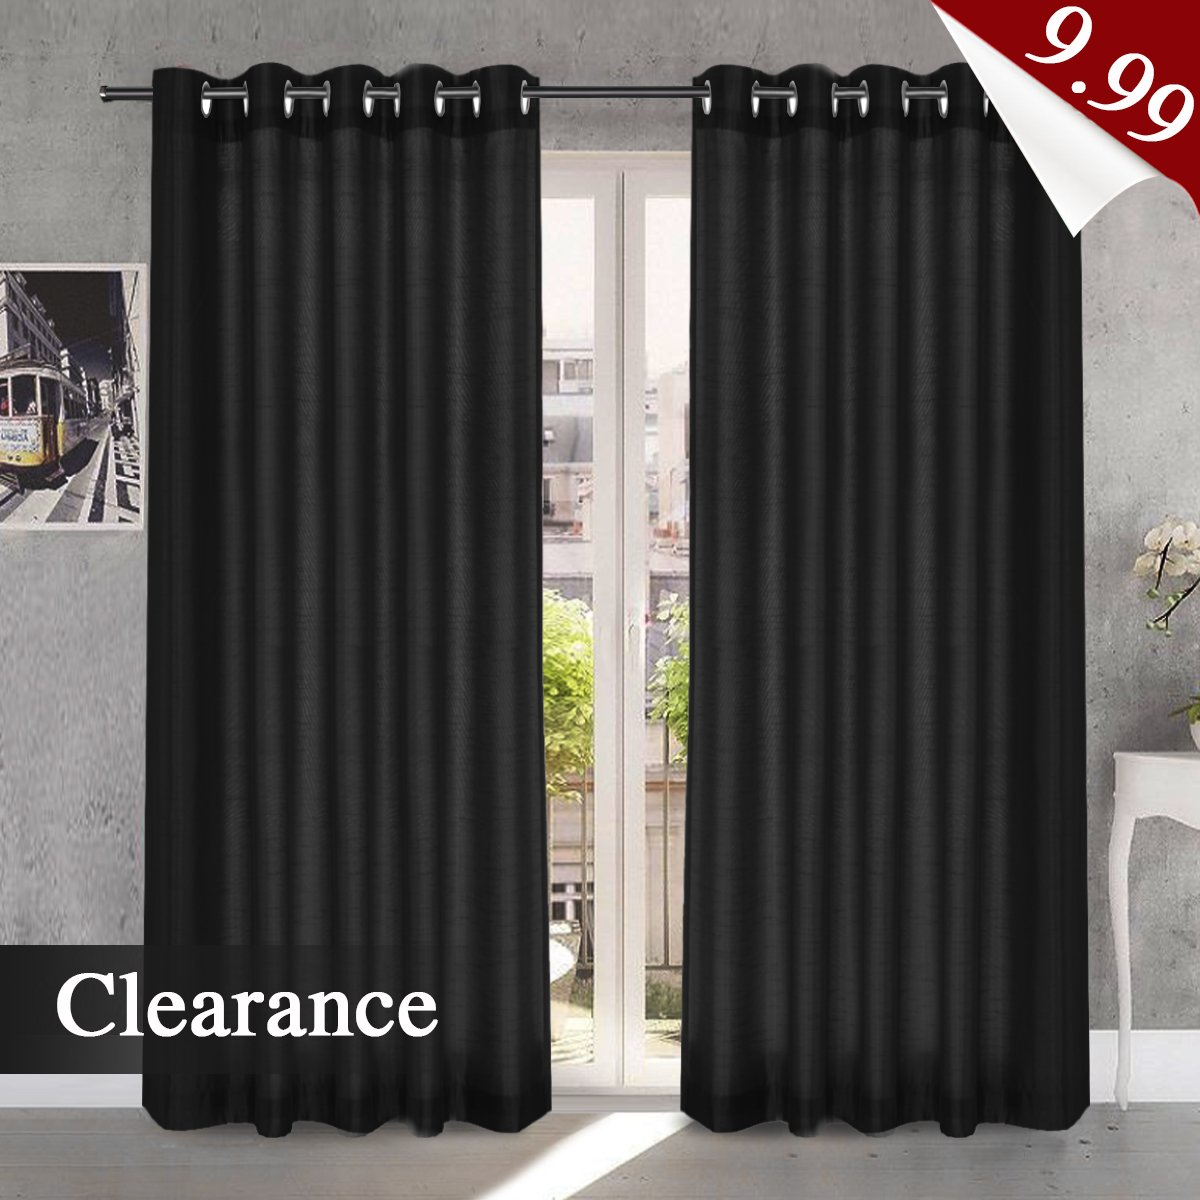 H.Versailtex Faux Silk Eyelet Curtains Black Bedroom Dupioni Light Reducing Window Curtain Panels Living Room Drapes Privacy Window Treatments, 46'' Width x 54'' Drop, 2 Panels